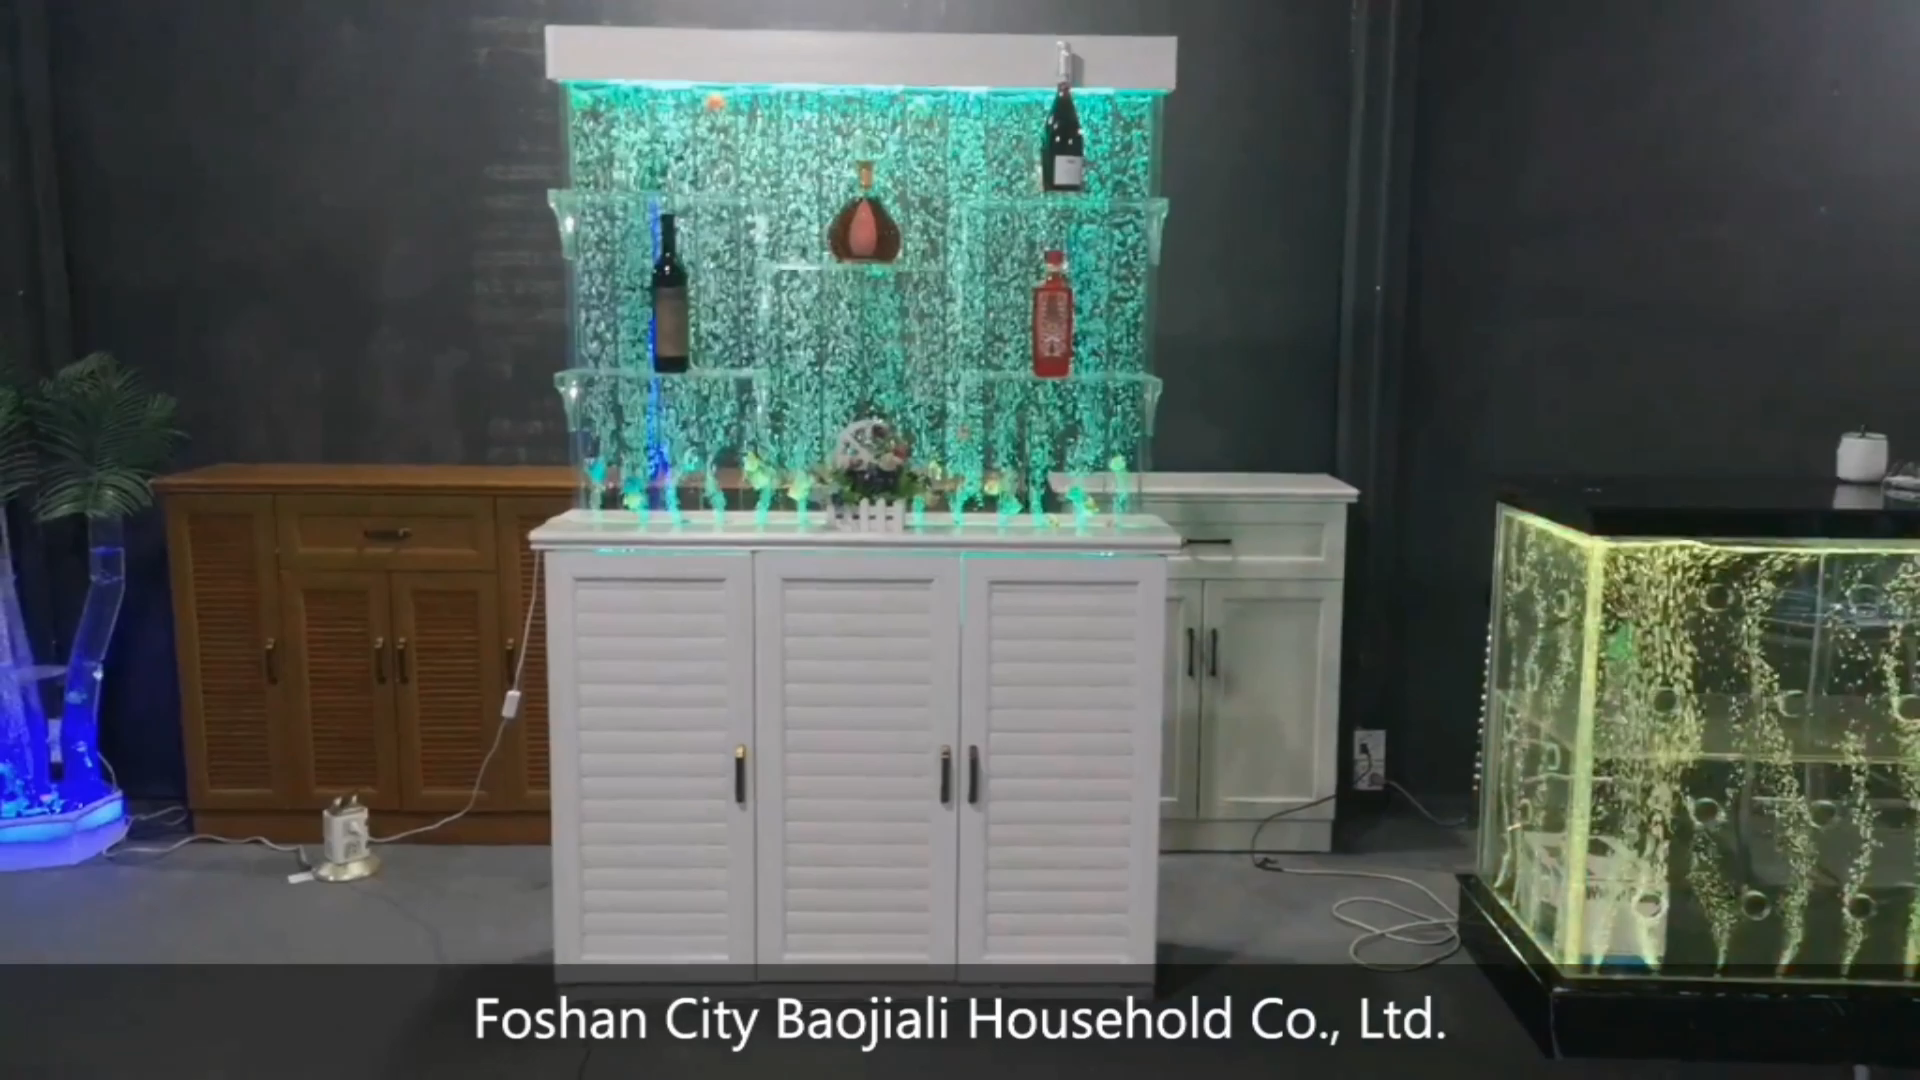 double sided shelves and aluminum alloy base cabinet LED living room storage cabinets with aquarium backdrop